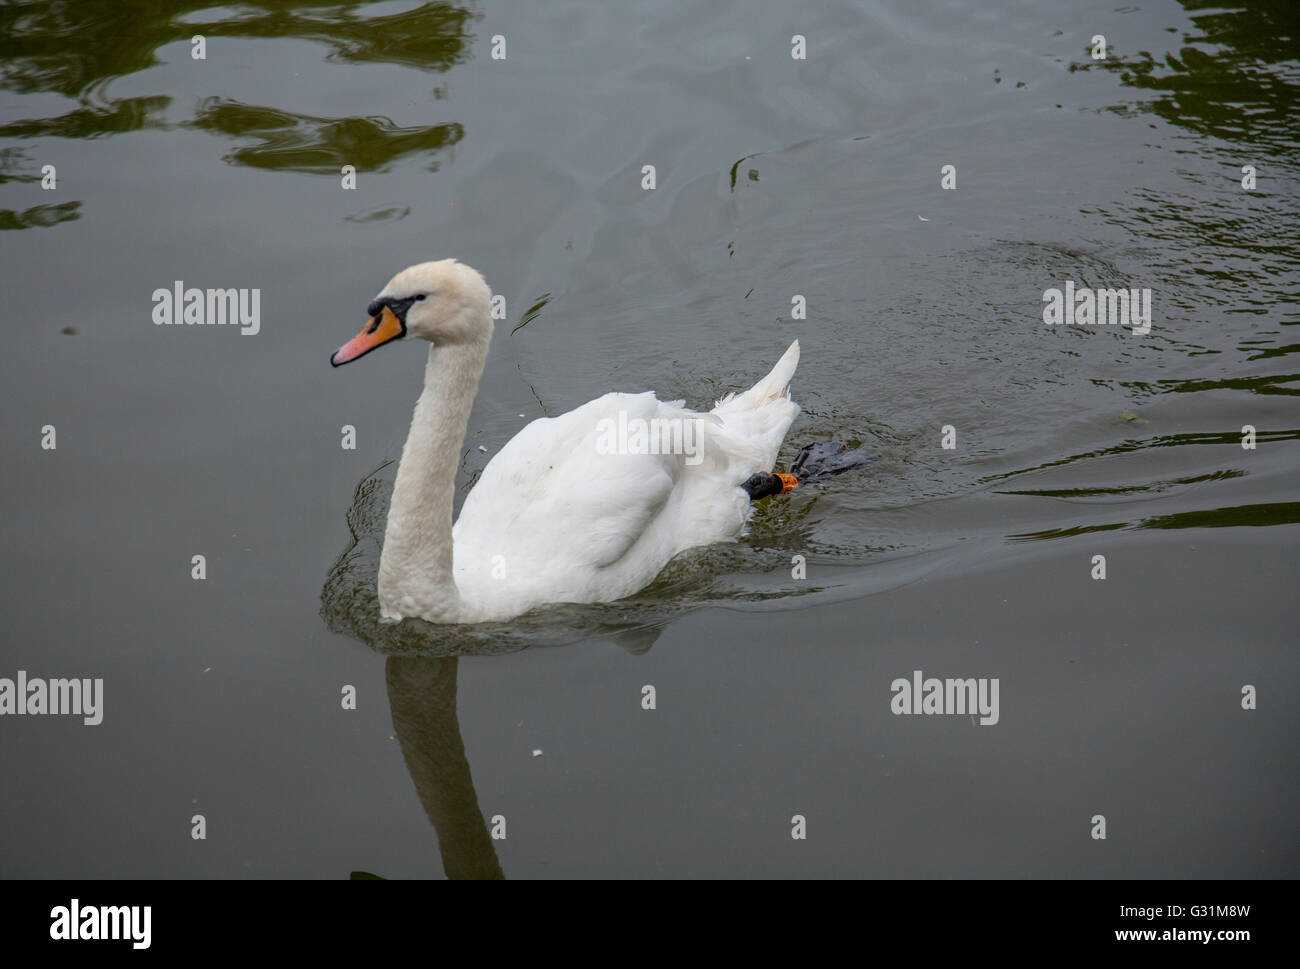 swan on water - Stock Image